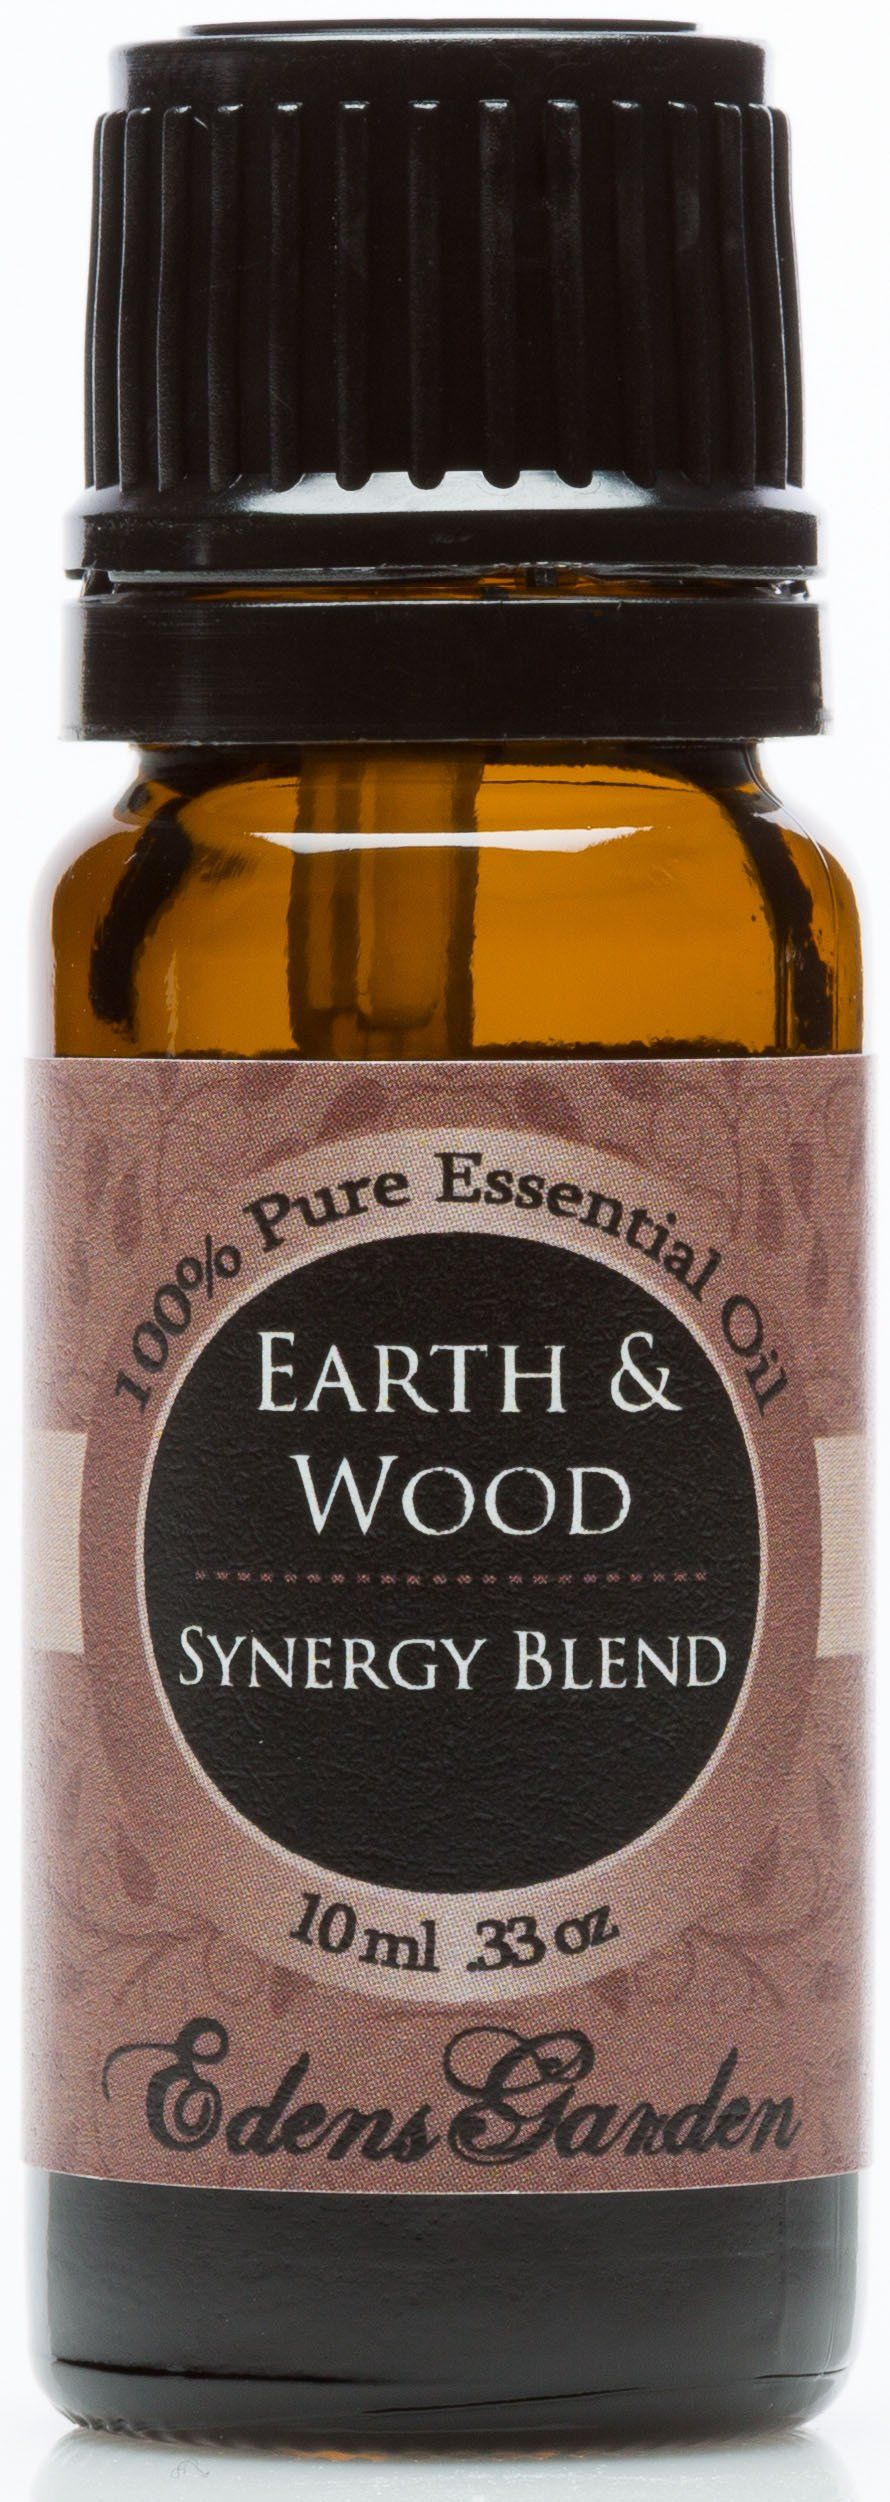 Earth & Wood Essential Oil Synergy Blend * Contains